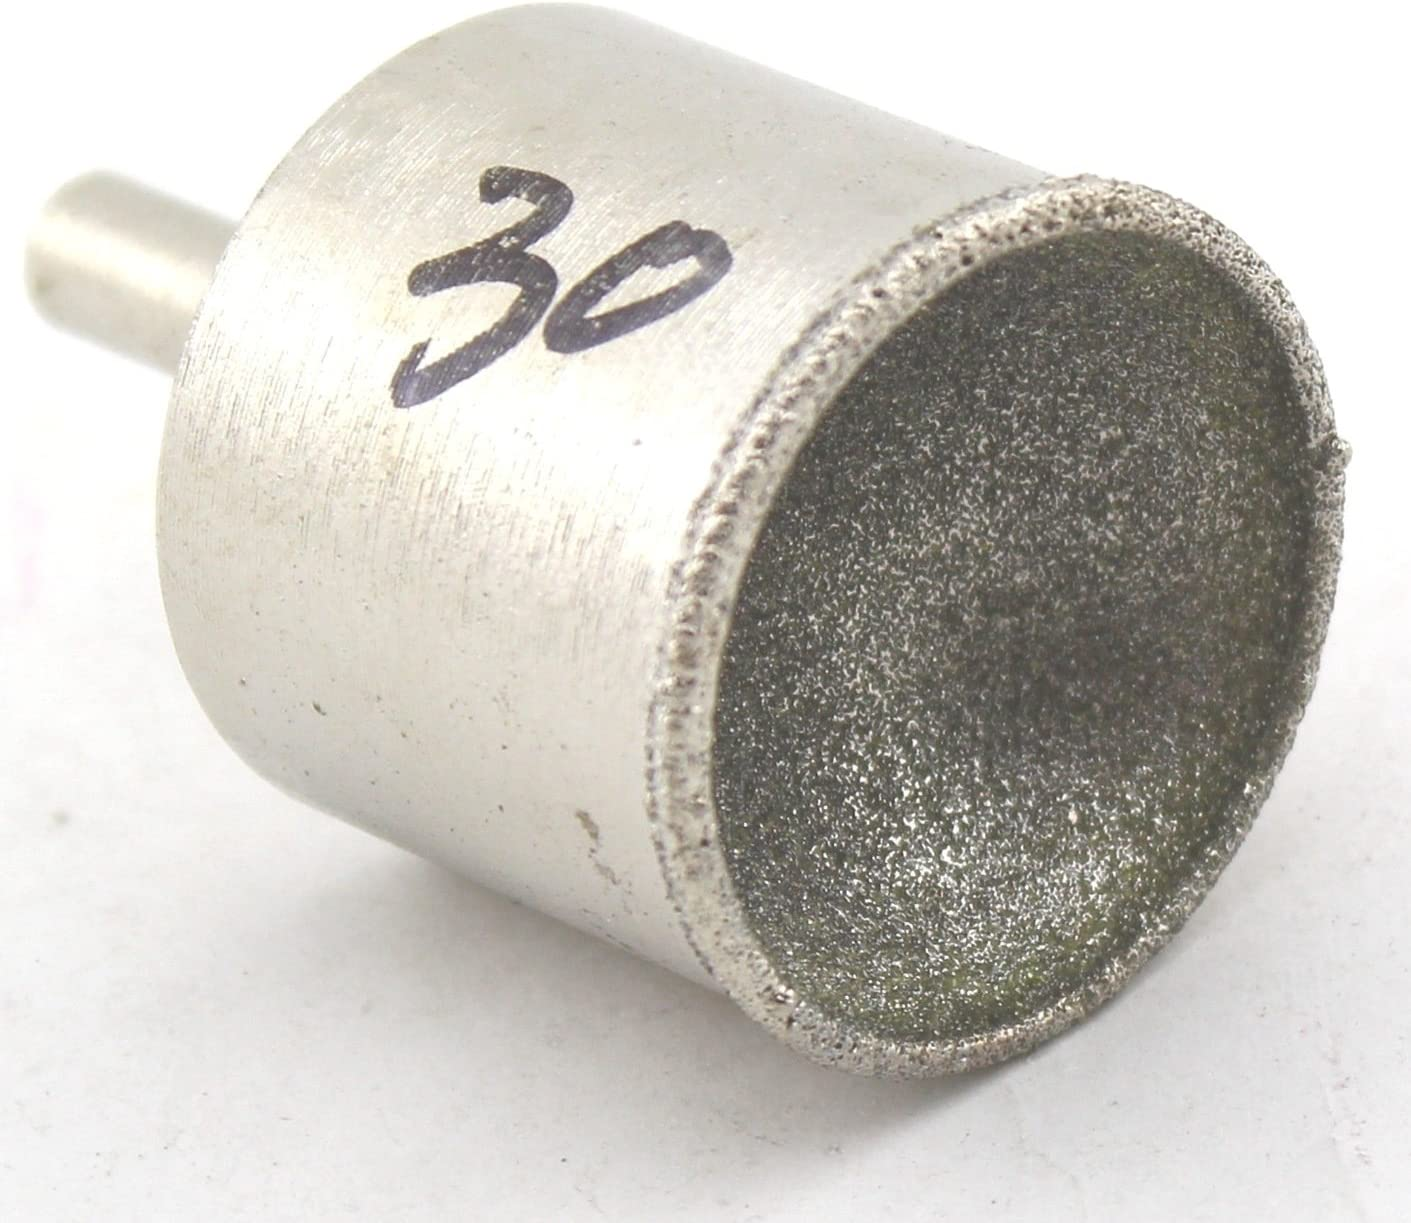 ILOVETOOL Sale Special Price 30mm Grit 80 Diamond Grinding He SPHERICAL CONCAVE Bit Fort Worth Mall